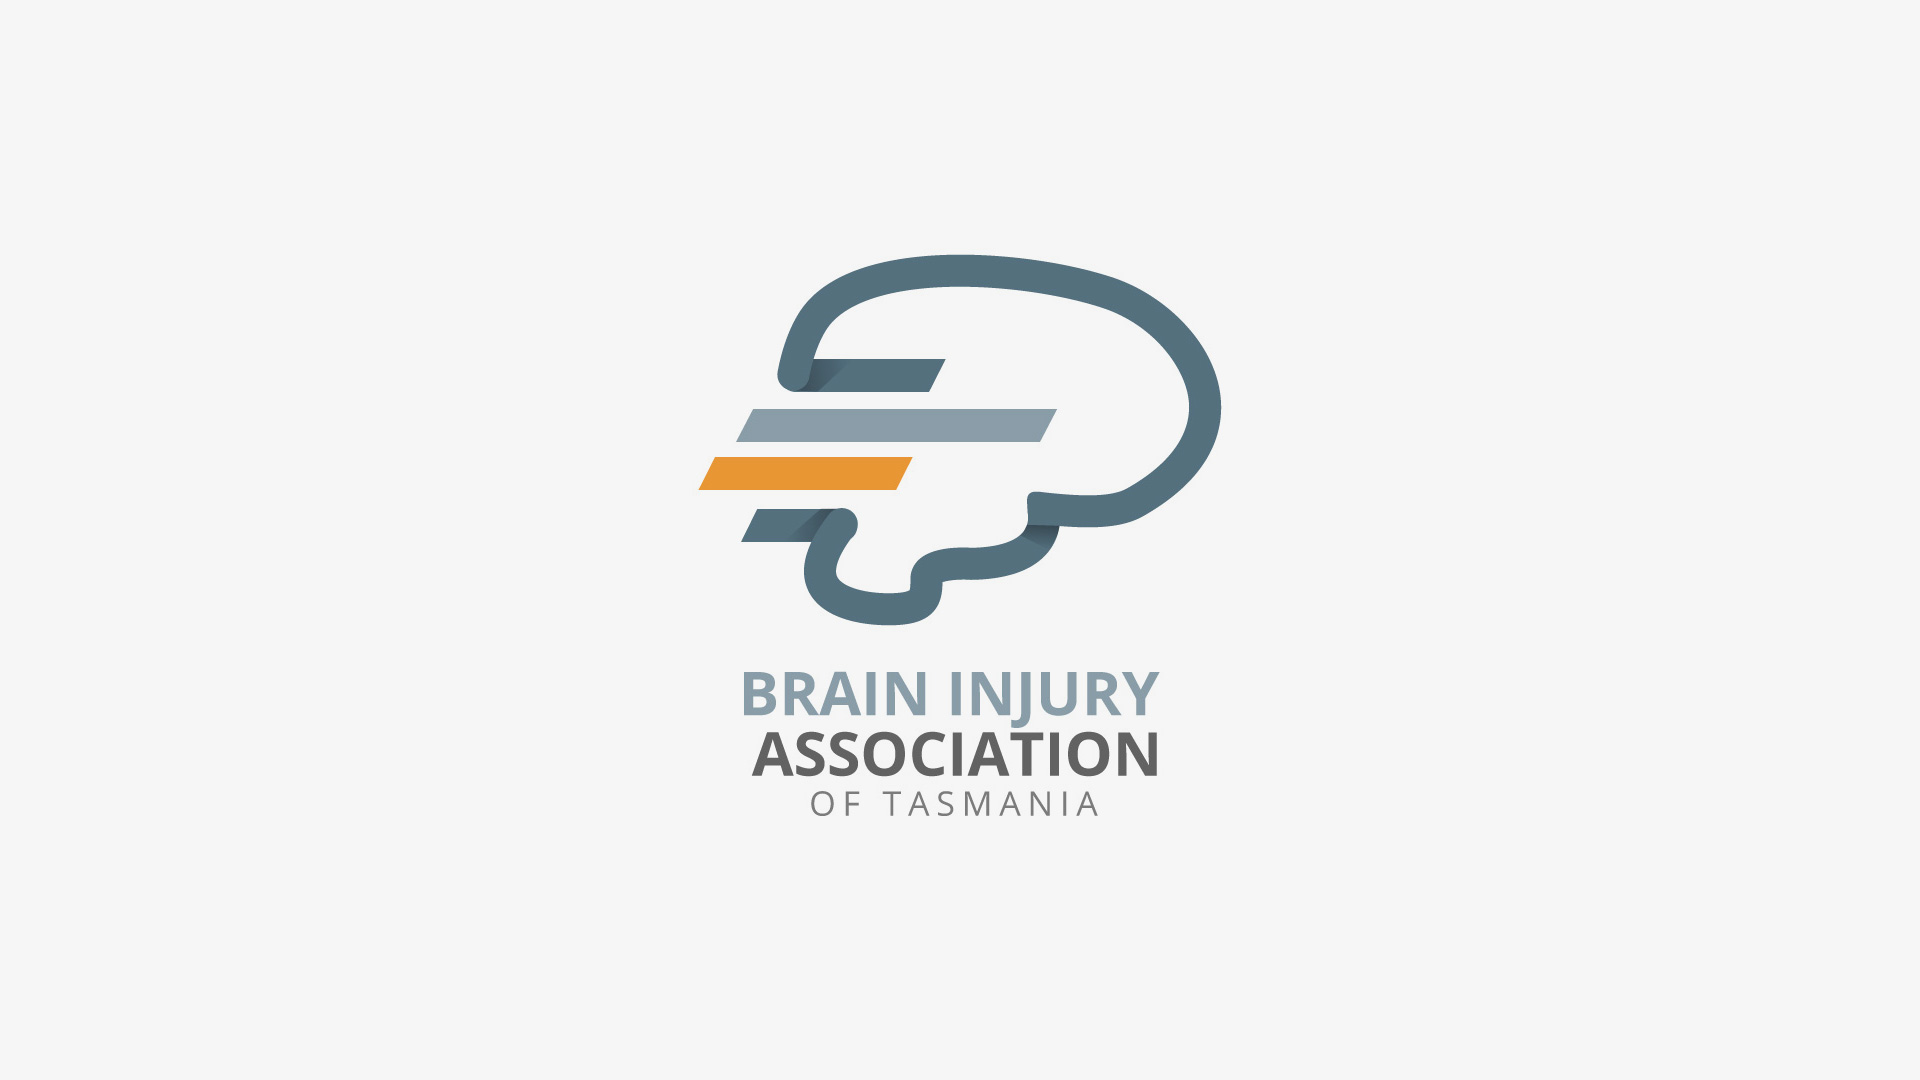 The new BIAT logo, launched as a part of Brain Injury Awareness Week in 2017.